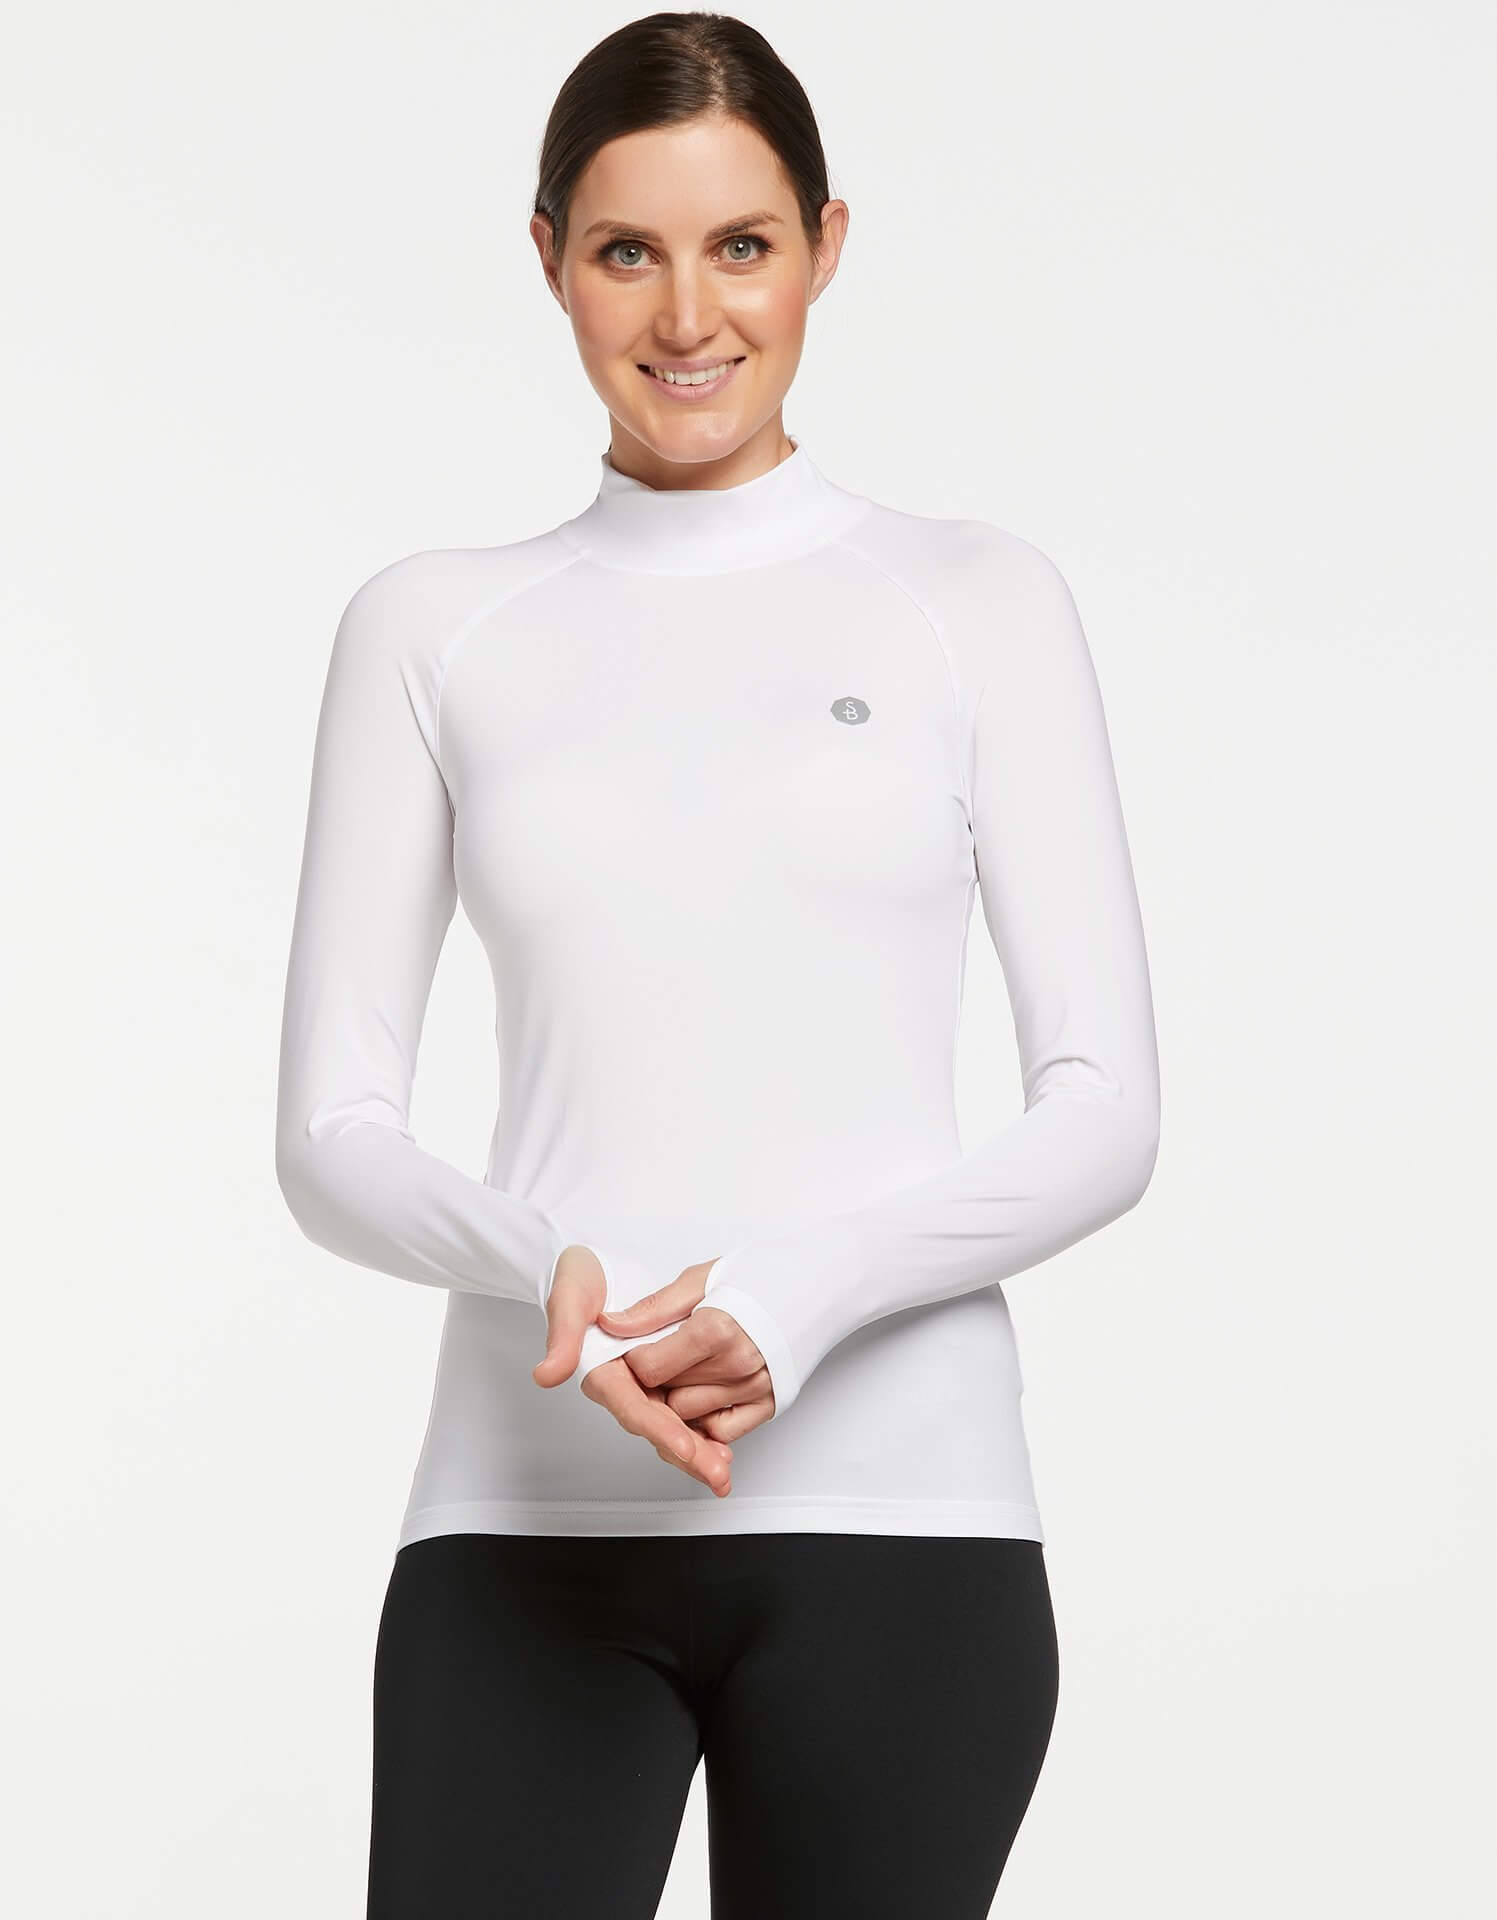 Solbari UPF 50+ Sun Protective White Turtleneck Base Layer for Women